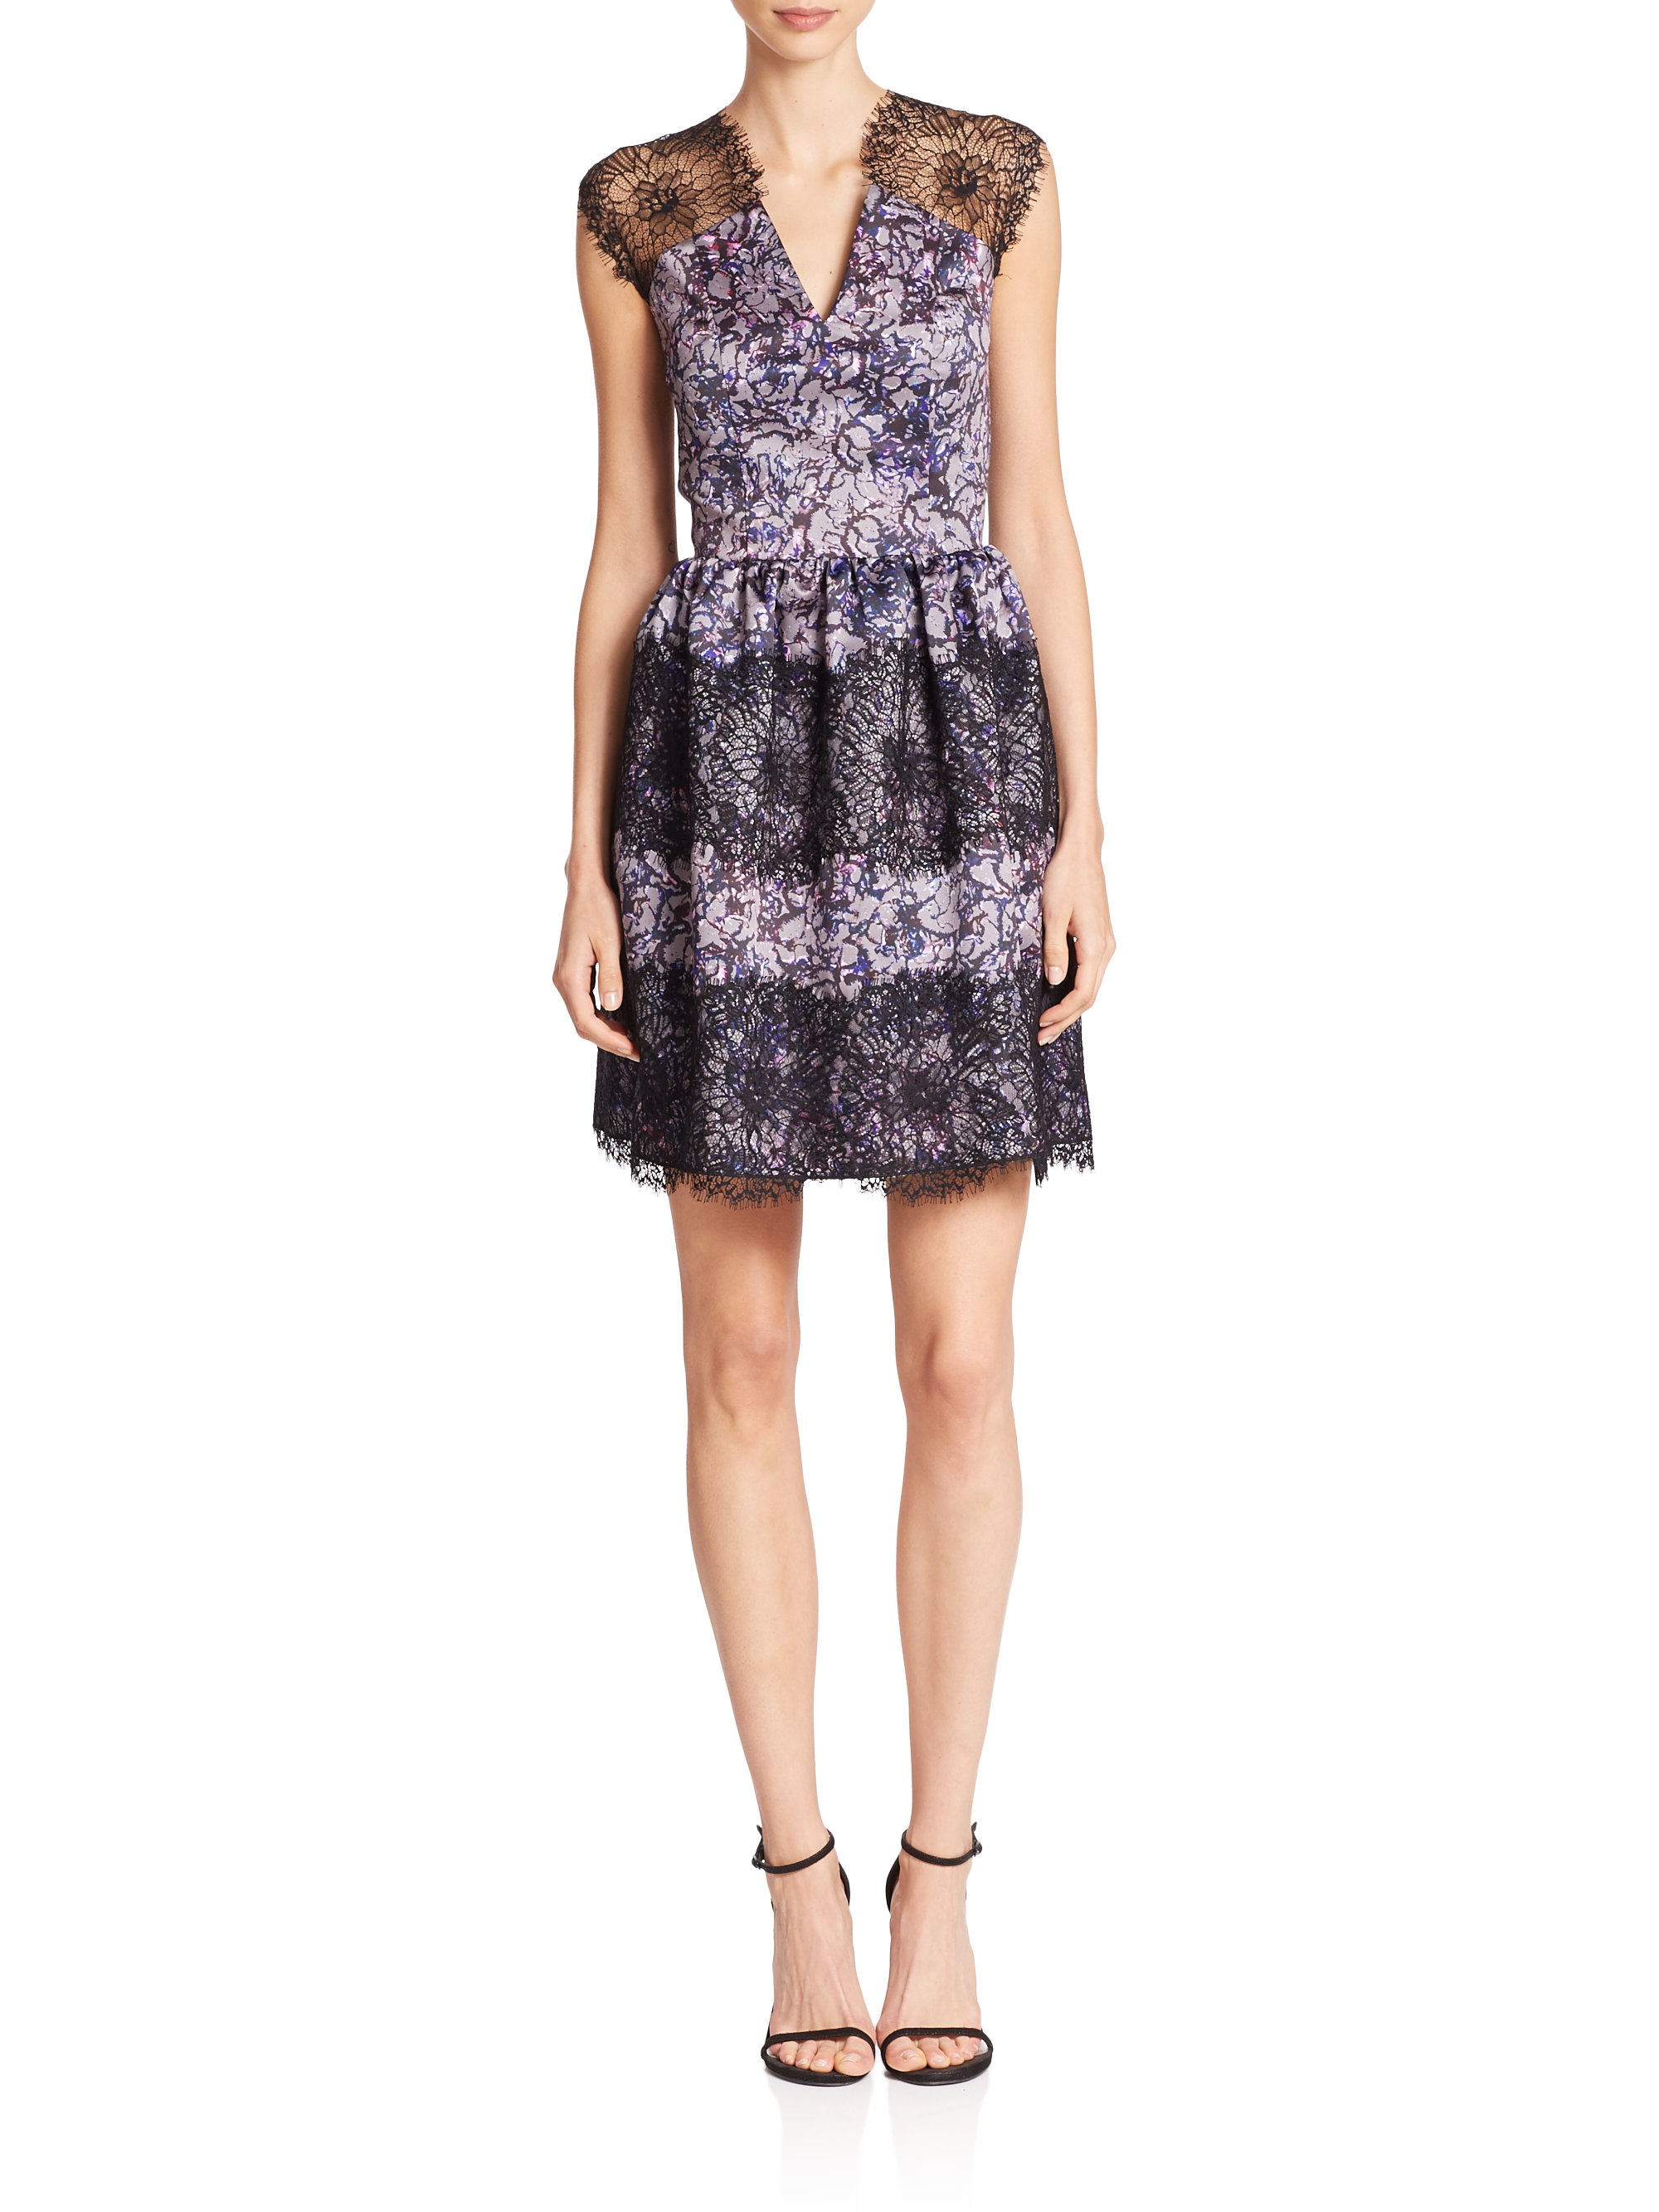 Nha khanh Claudia Floral Satin & Lace Dress in Blue